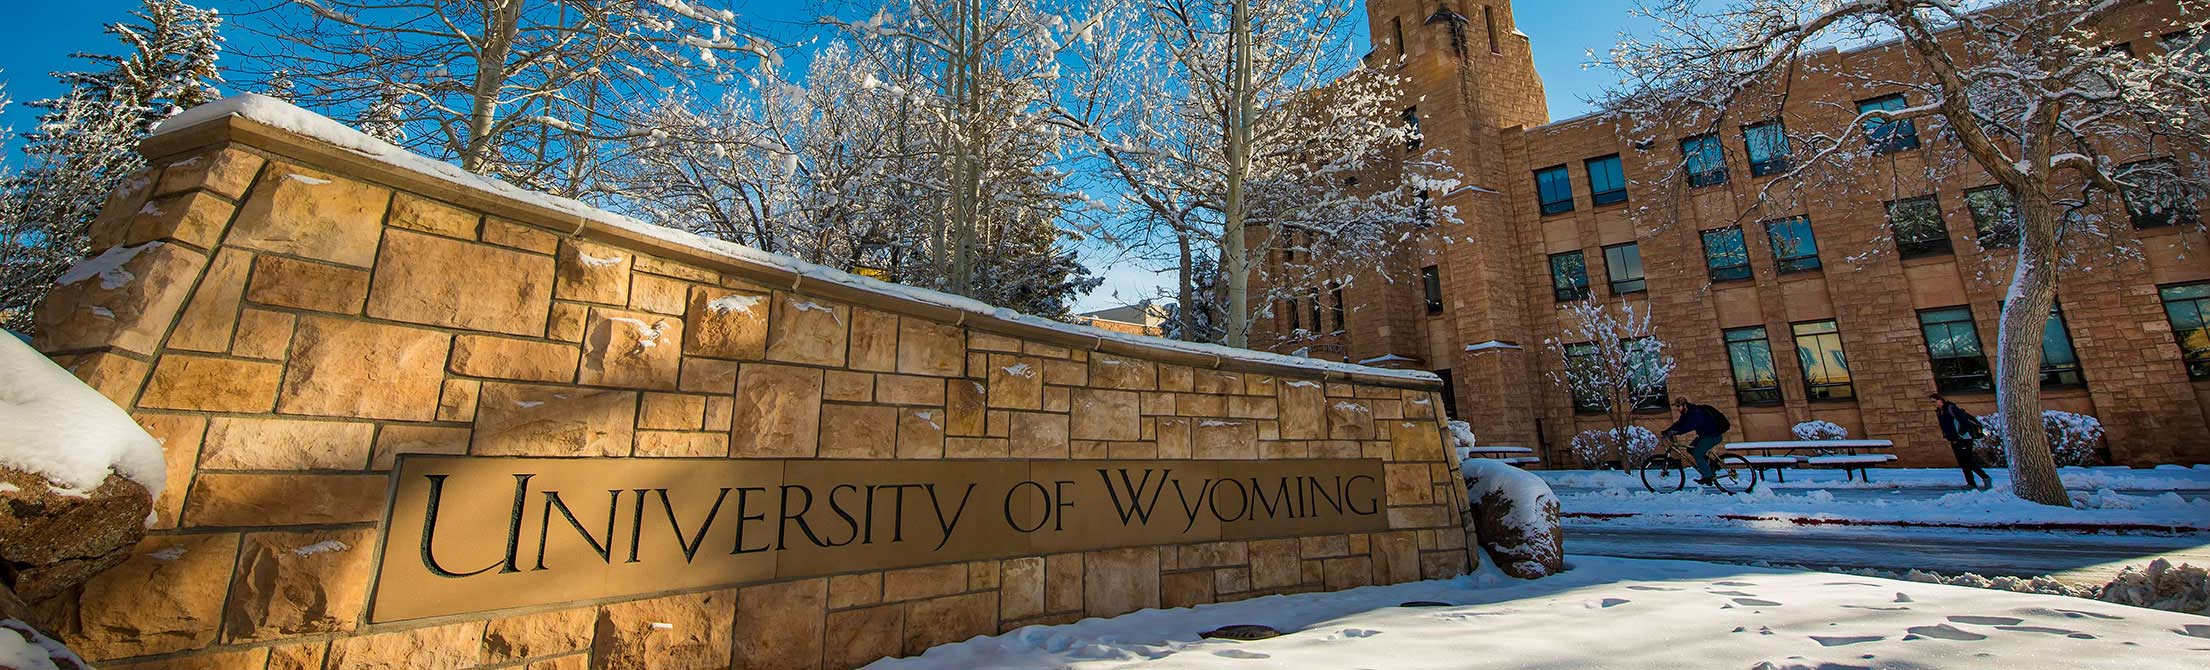 UW Considers Tuition Hike for In-State, Decrease for Out-of-State